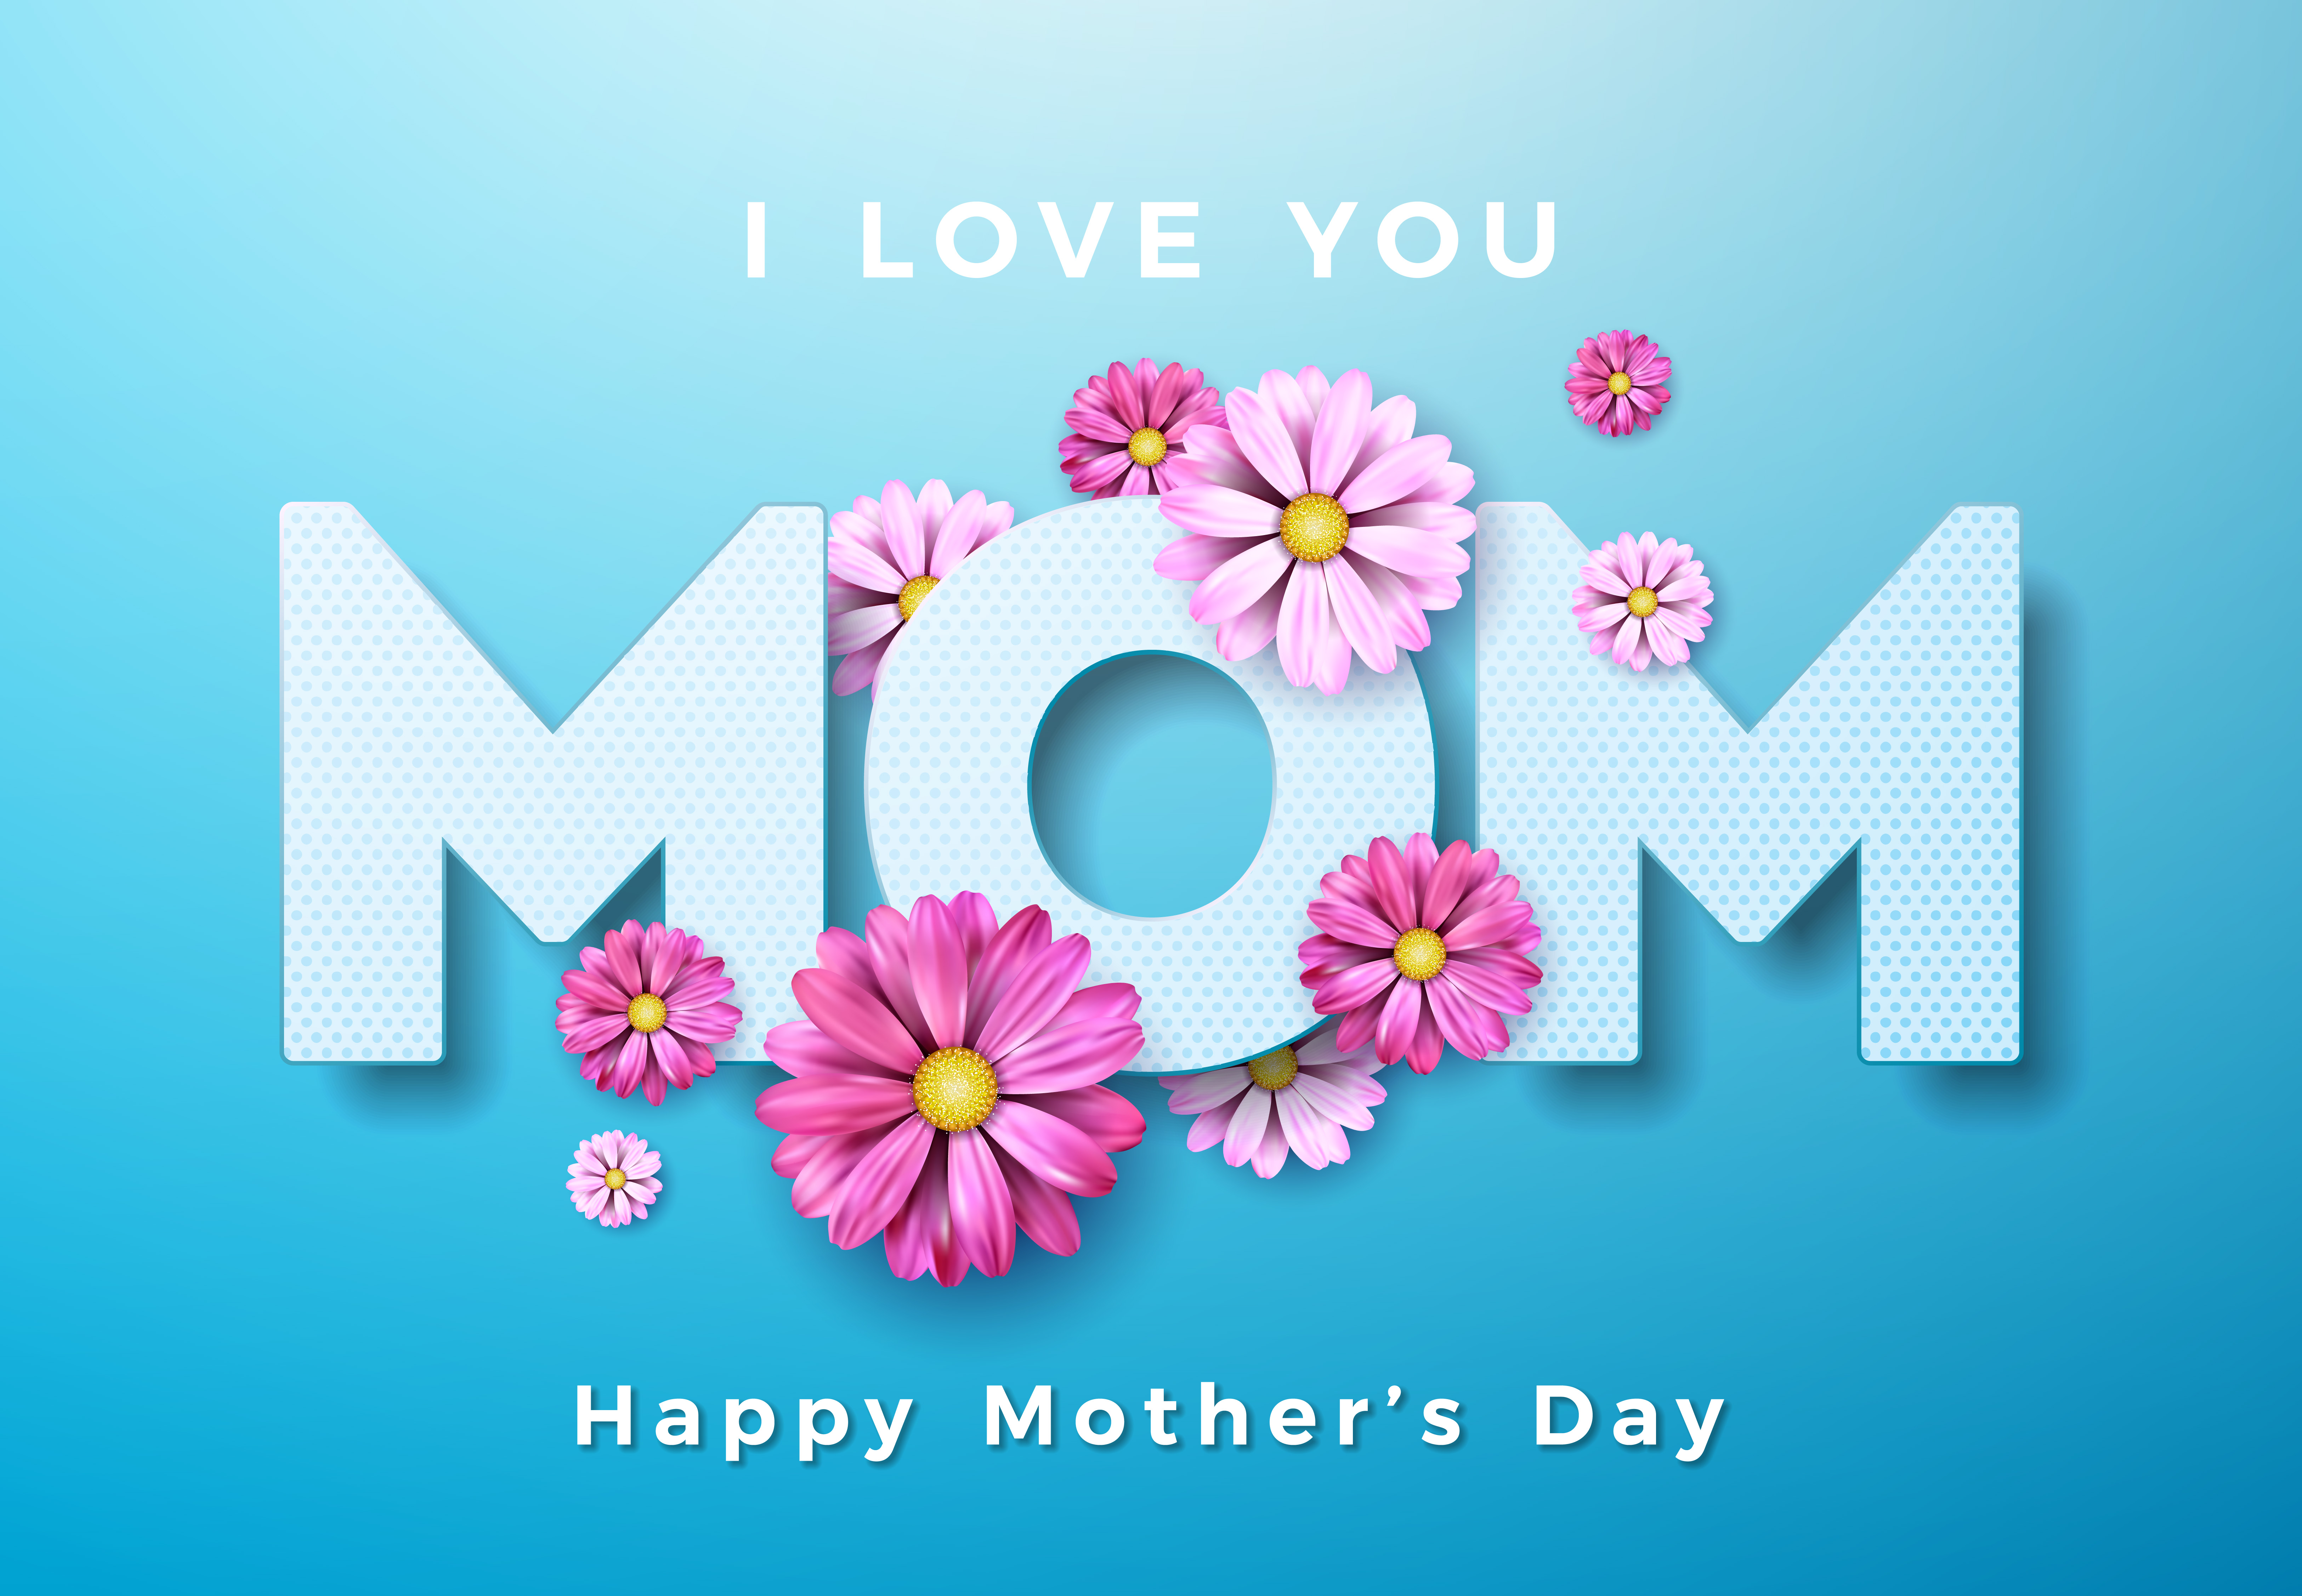 happy mother's day greeting card design 341551  download